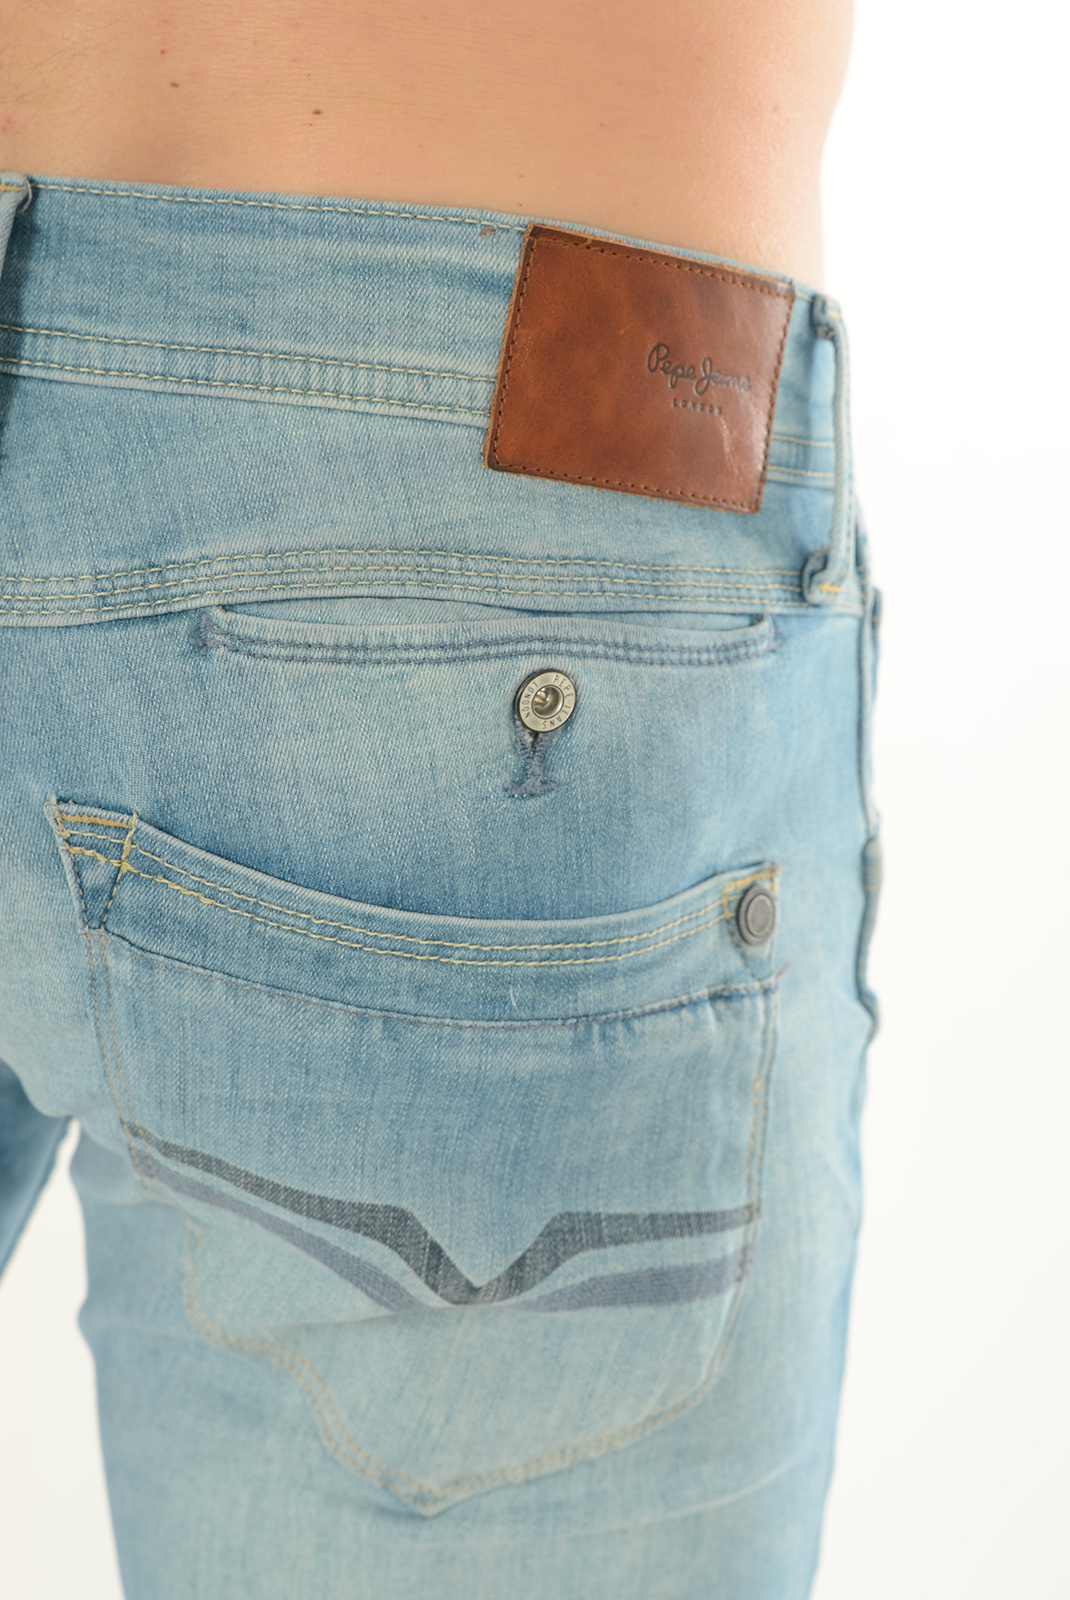 Jeans  Pepe jeans PM200029Z33 SPIKE DENIM